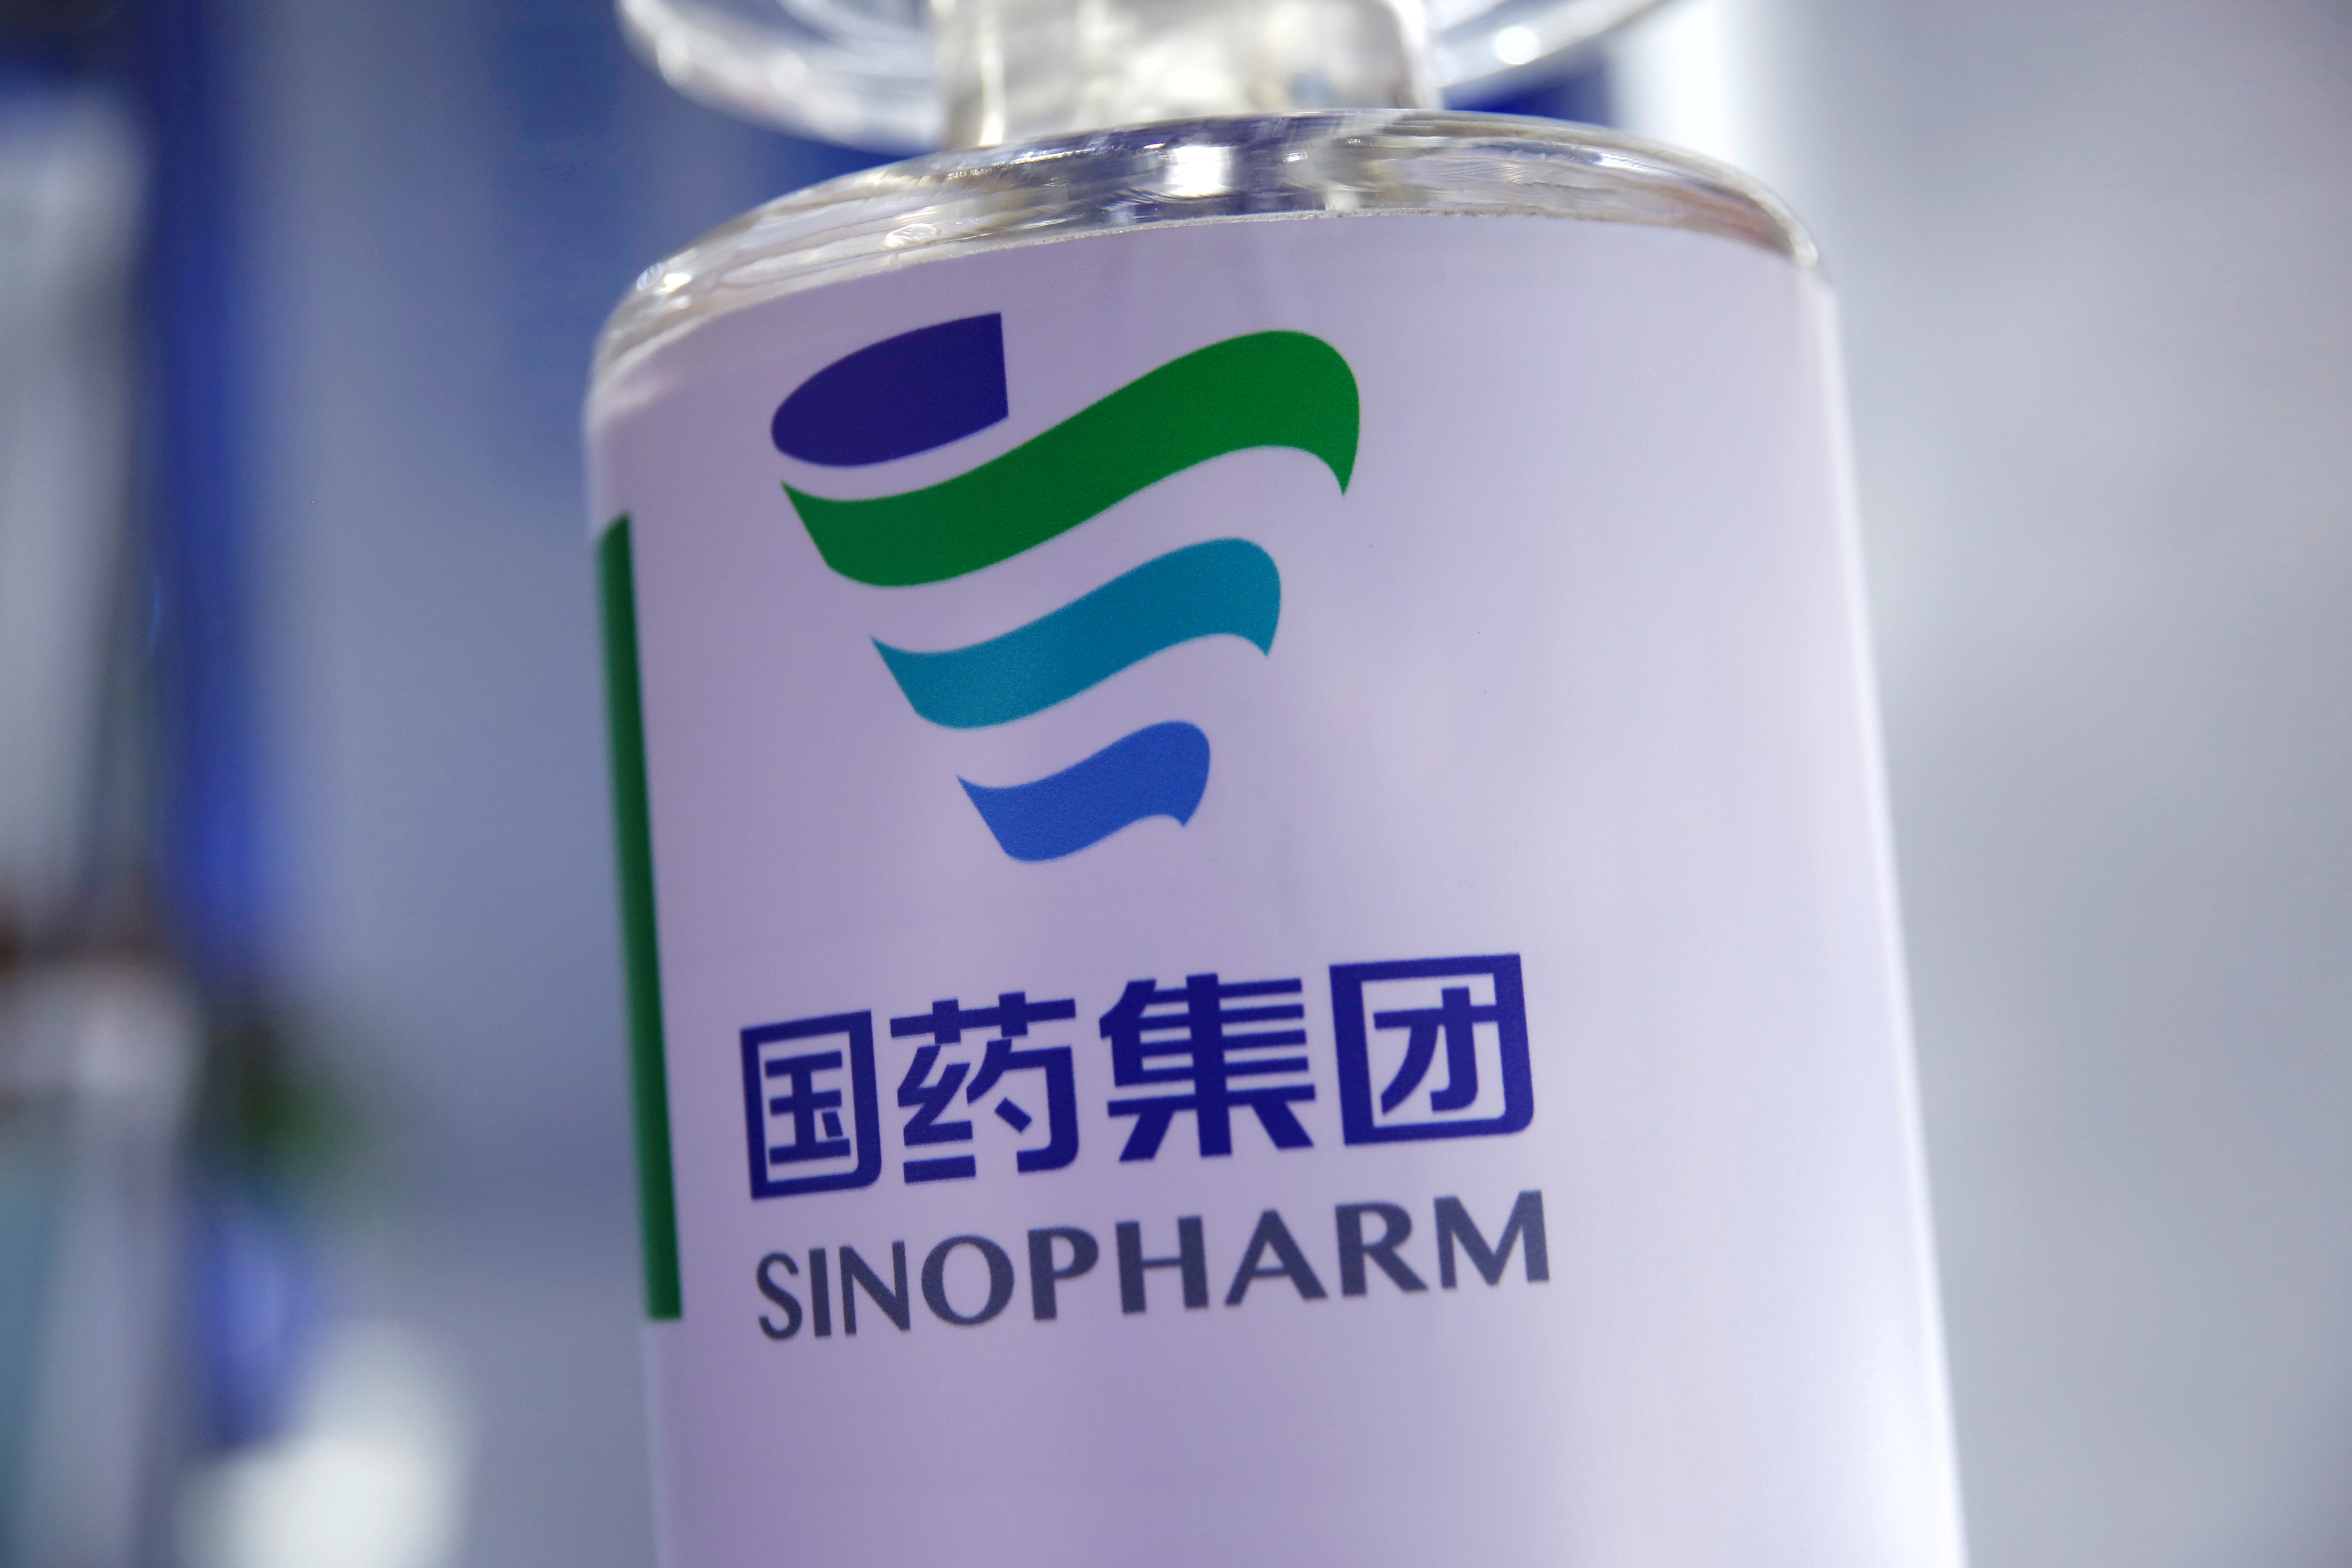 Signage of Sinopharm is seen at the 2020 China International Fair for Trade in Services (CIFTIS), following the COVID-19 outbreak, in Beijing, China September 5, 2020. REUTERS/Tingshu Wang/File Photo